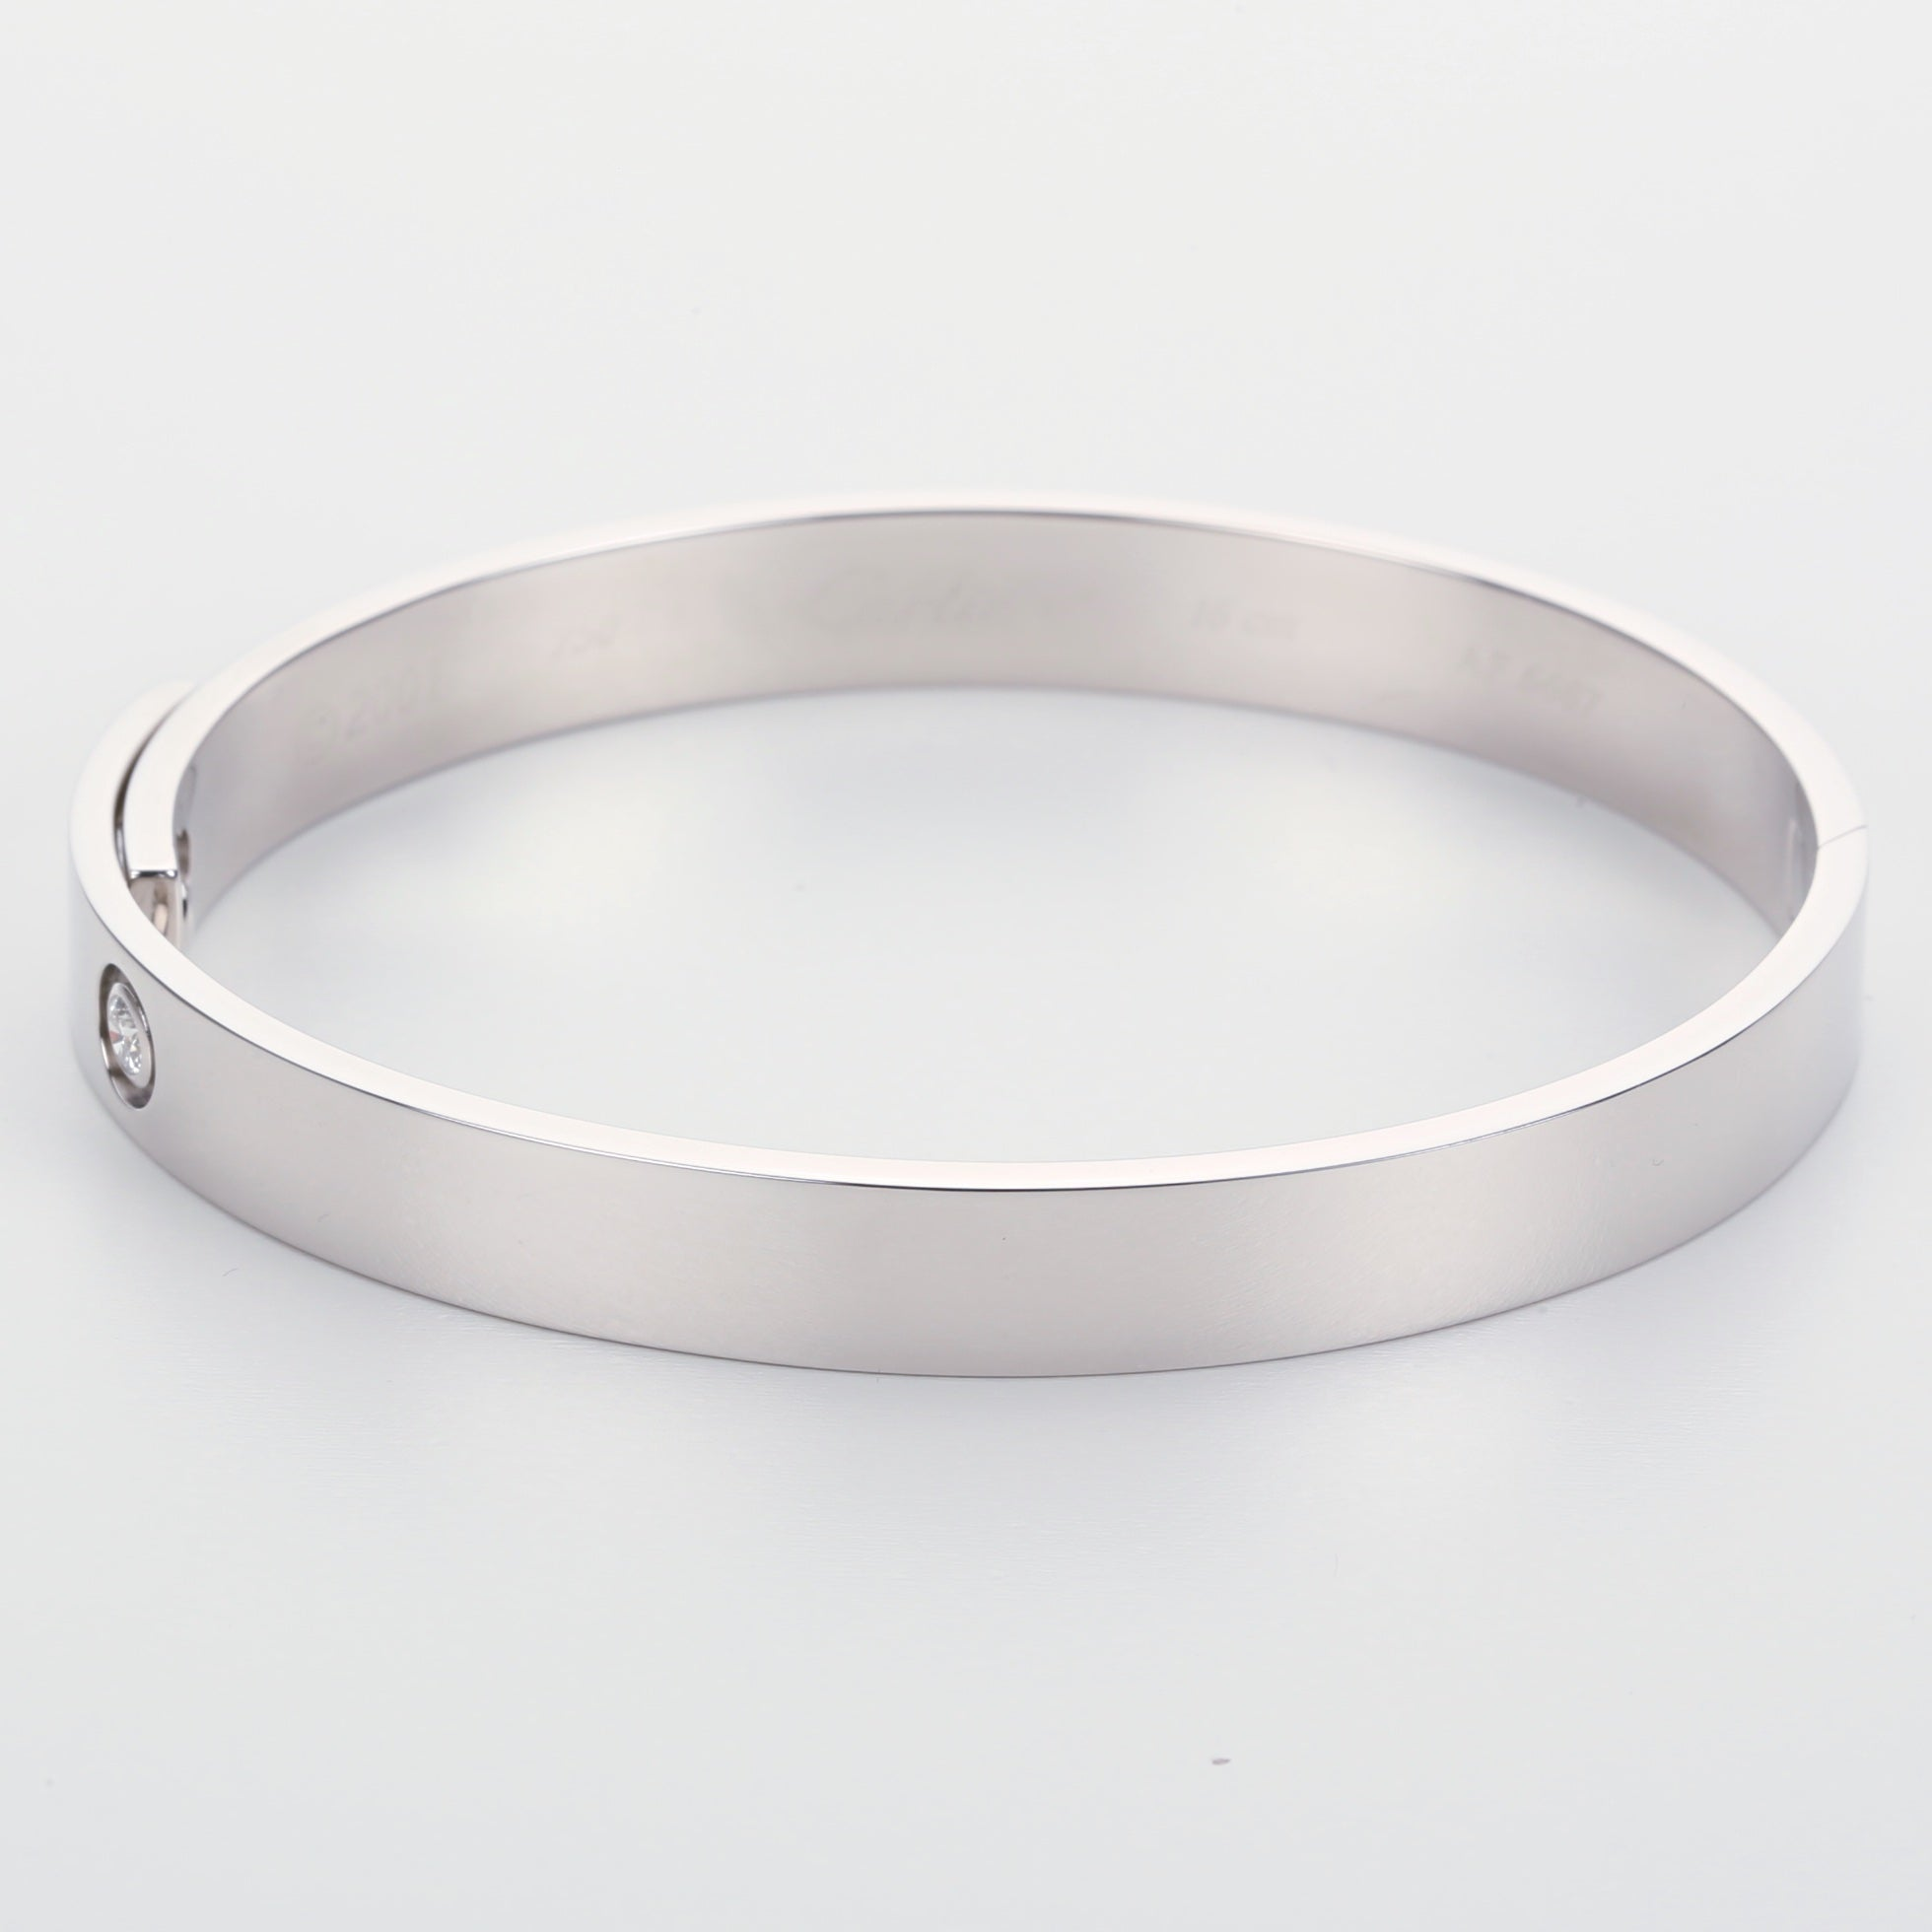 Vintage white gold Cartier 2001 anniversary bangle bracelet size 16 with box